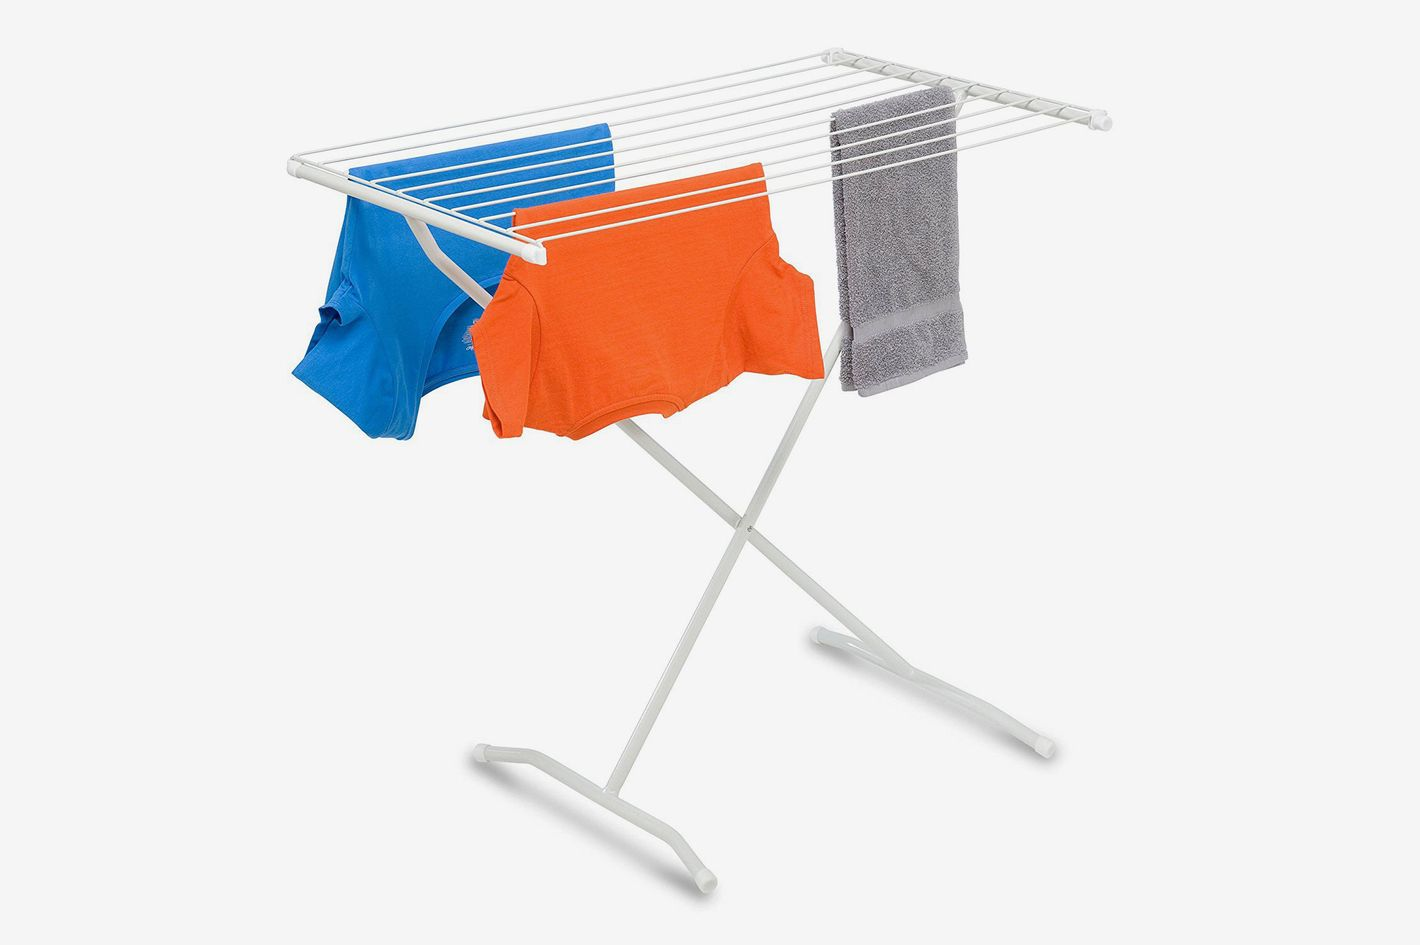 86fe537a8734 14 Best Clothes-Drying Racks 2019